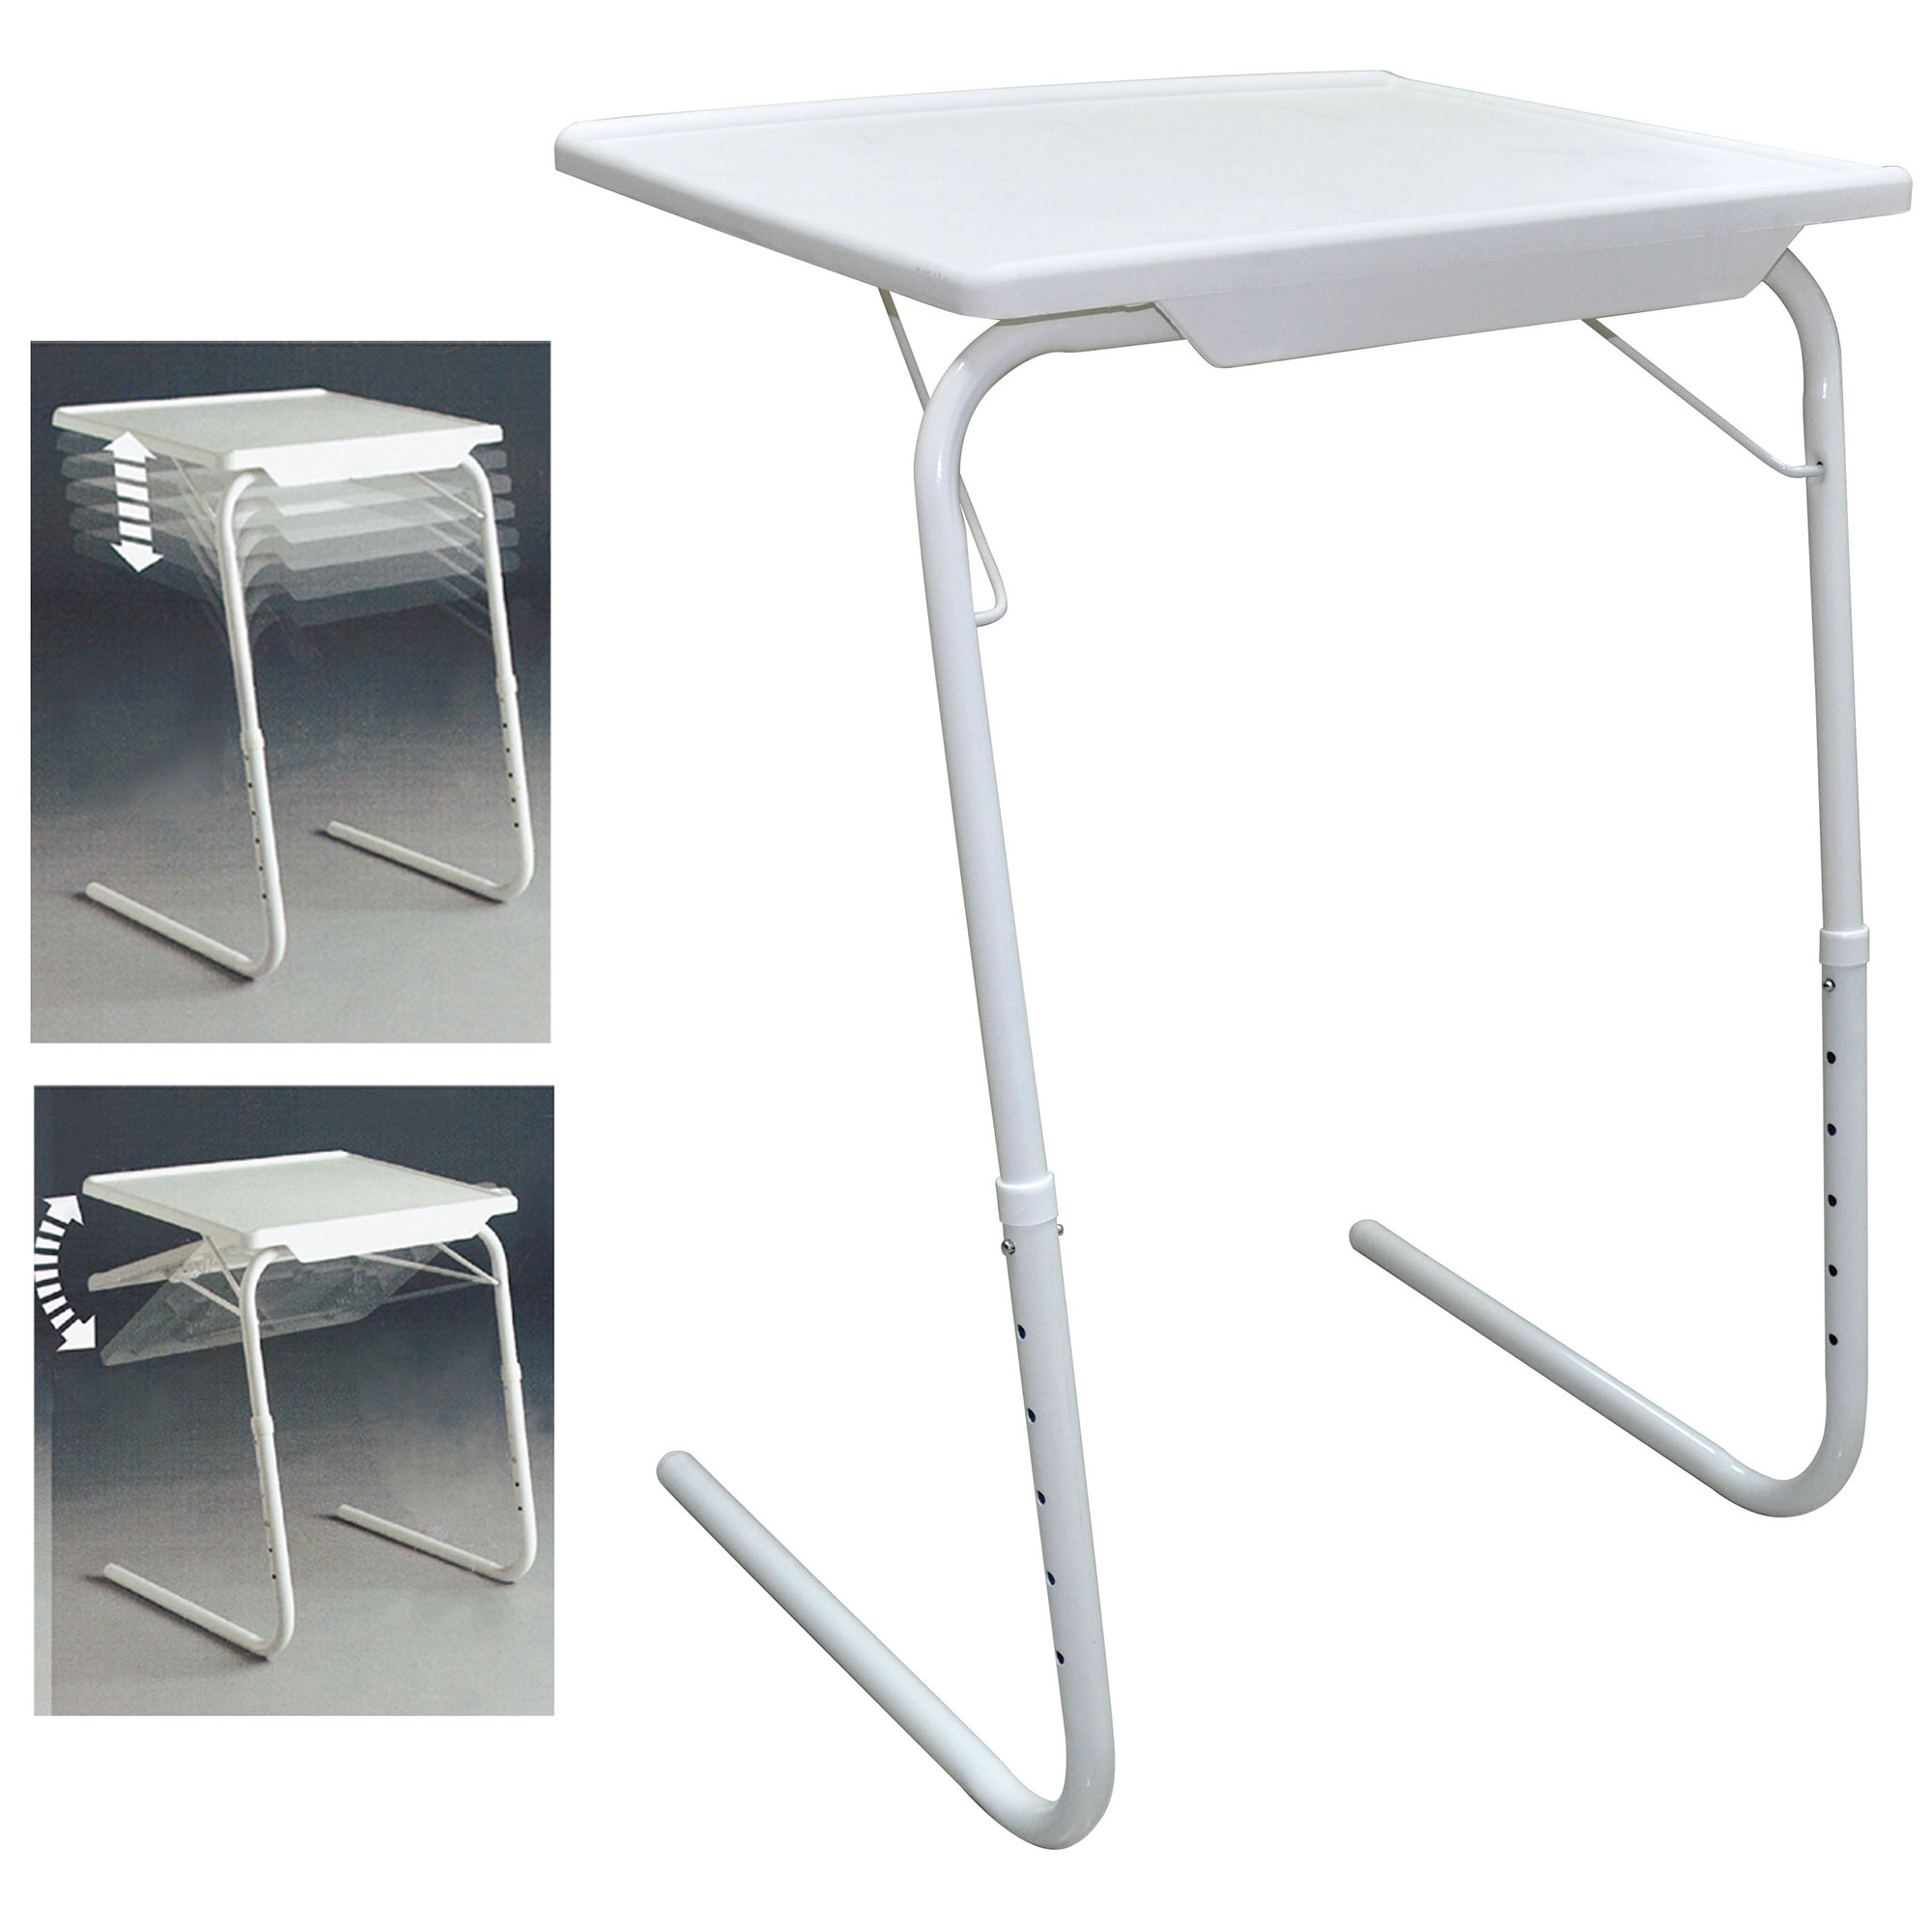 Adjustable Folding Table Tv Dinner Coffee Laptop Table